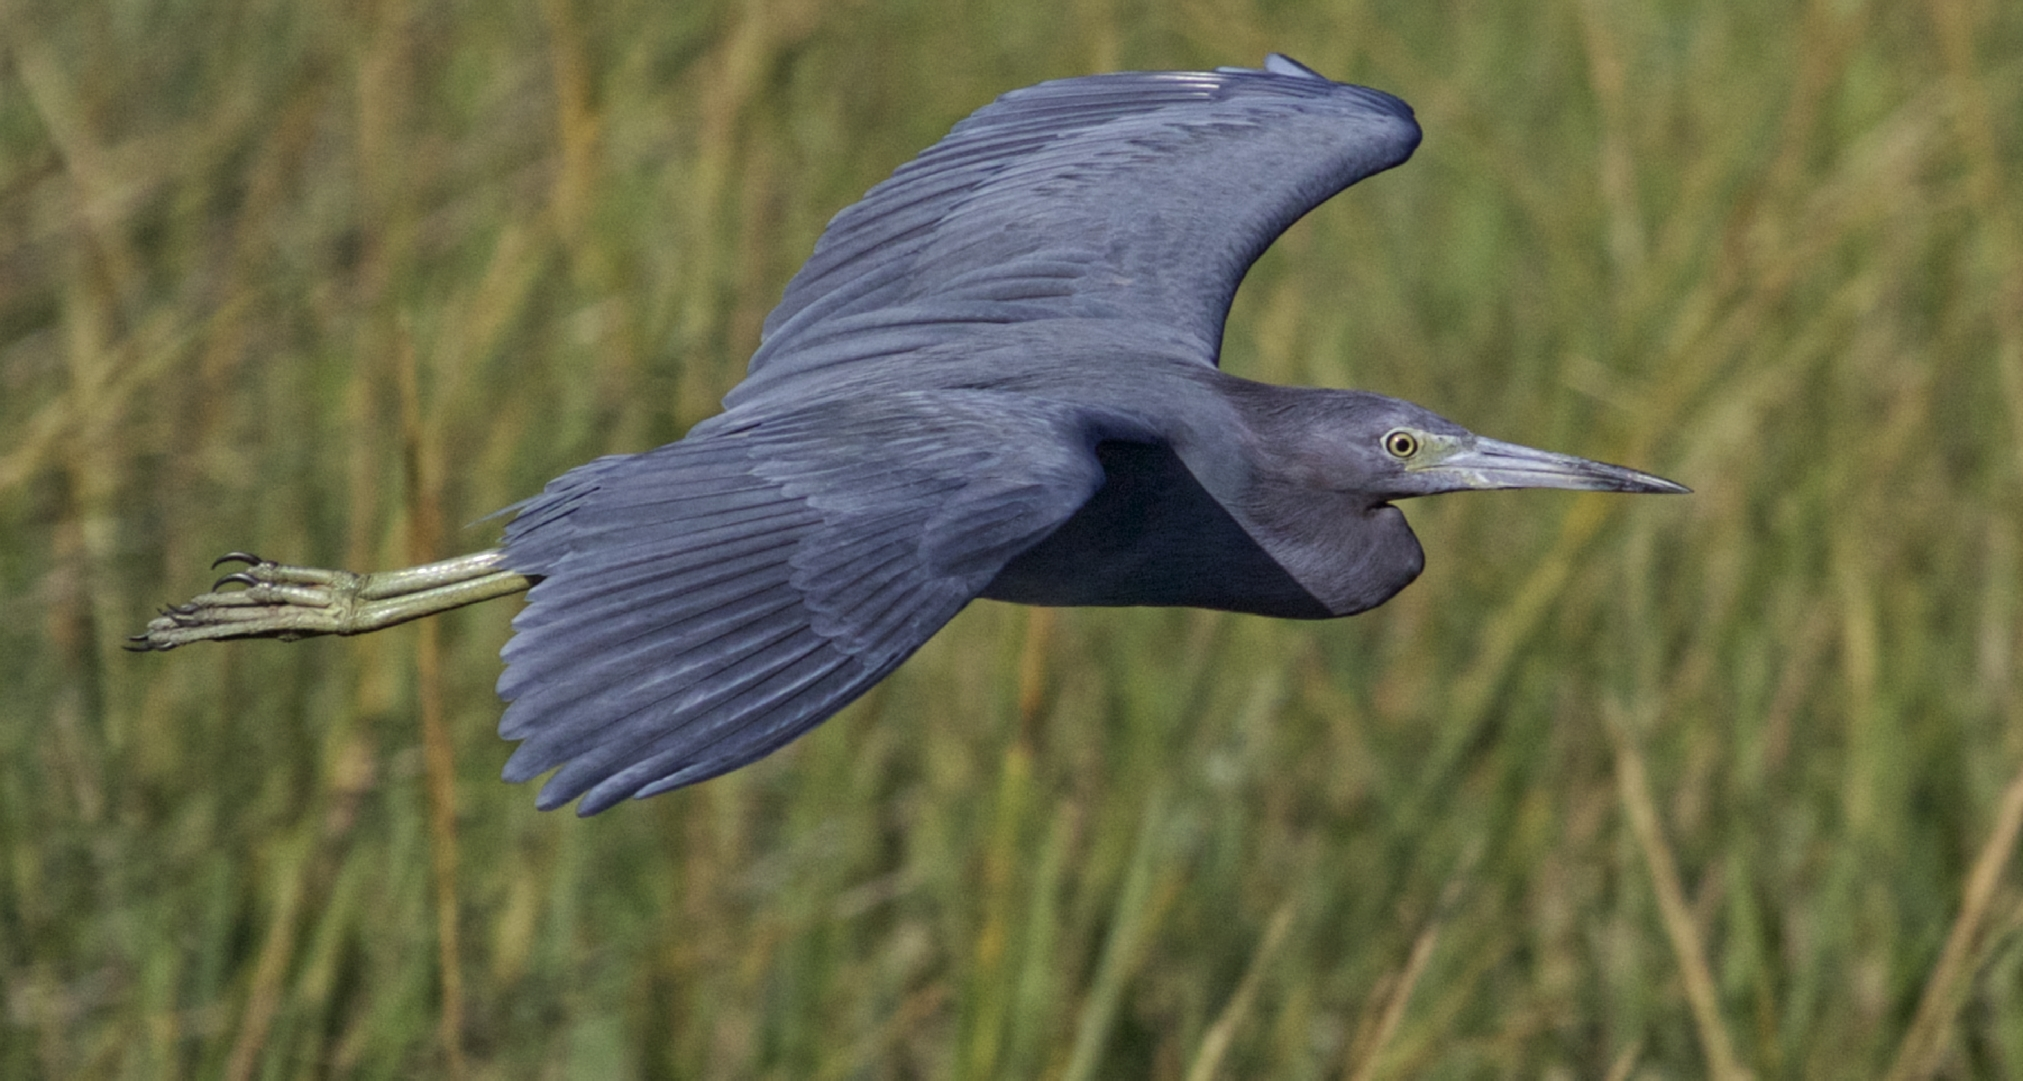 Broward Bob, the Little Blue Heron and weather prognosticator extraordinaire wings by on a cool autumn breeze to solve the Quasi-geostrophic Omega Equation issue for me...